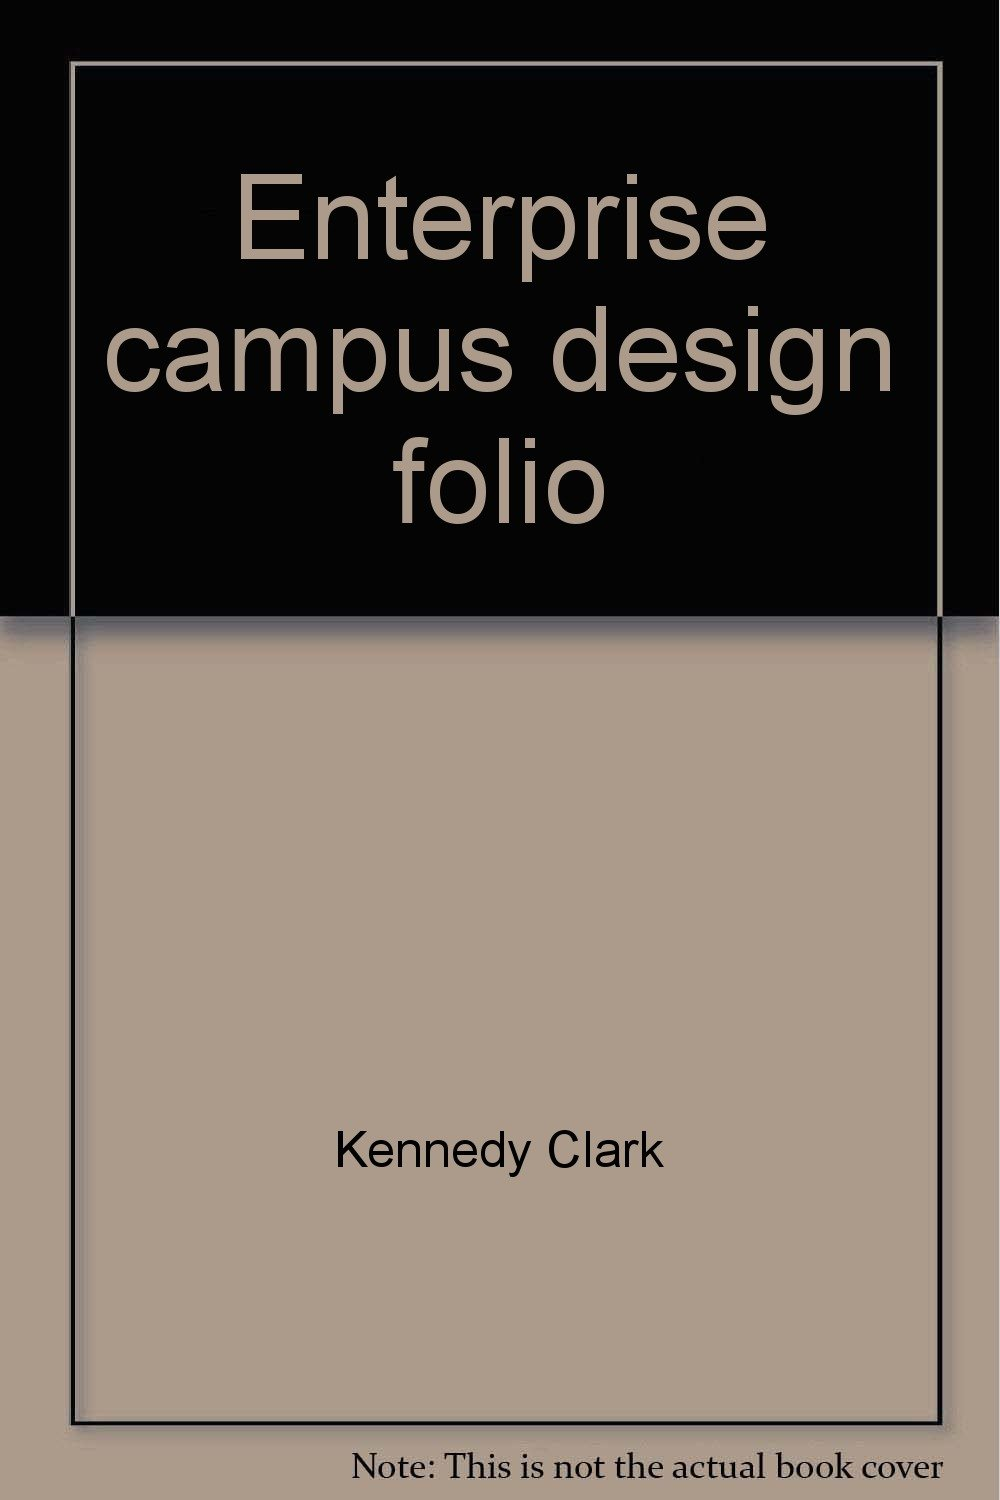 Download Enterprise campus design folio: Excerpts from the Cisco Press Book, Cisco LAN switching ebook